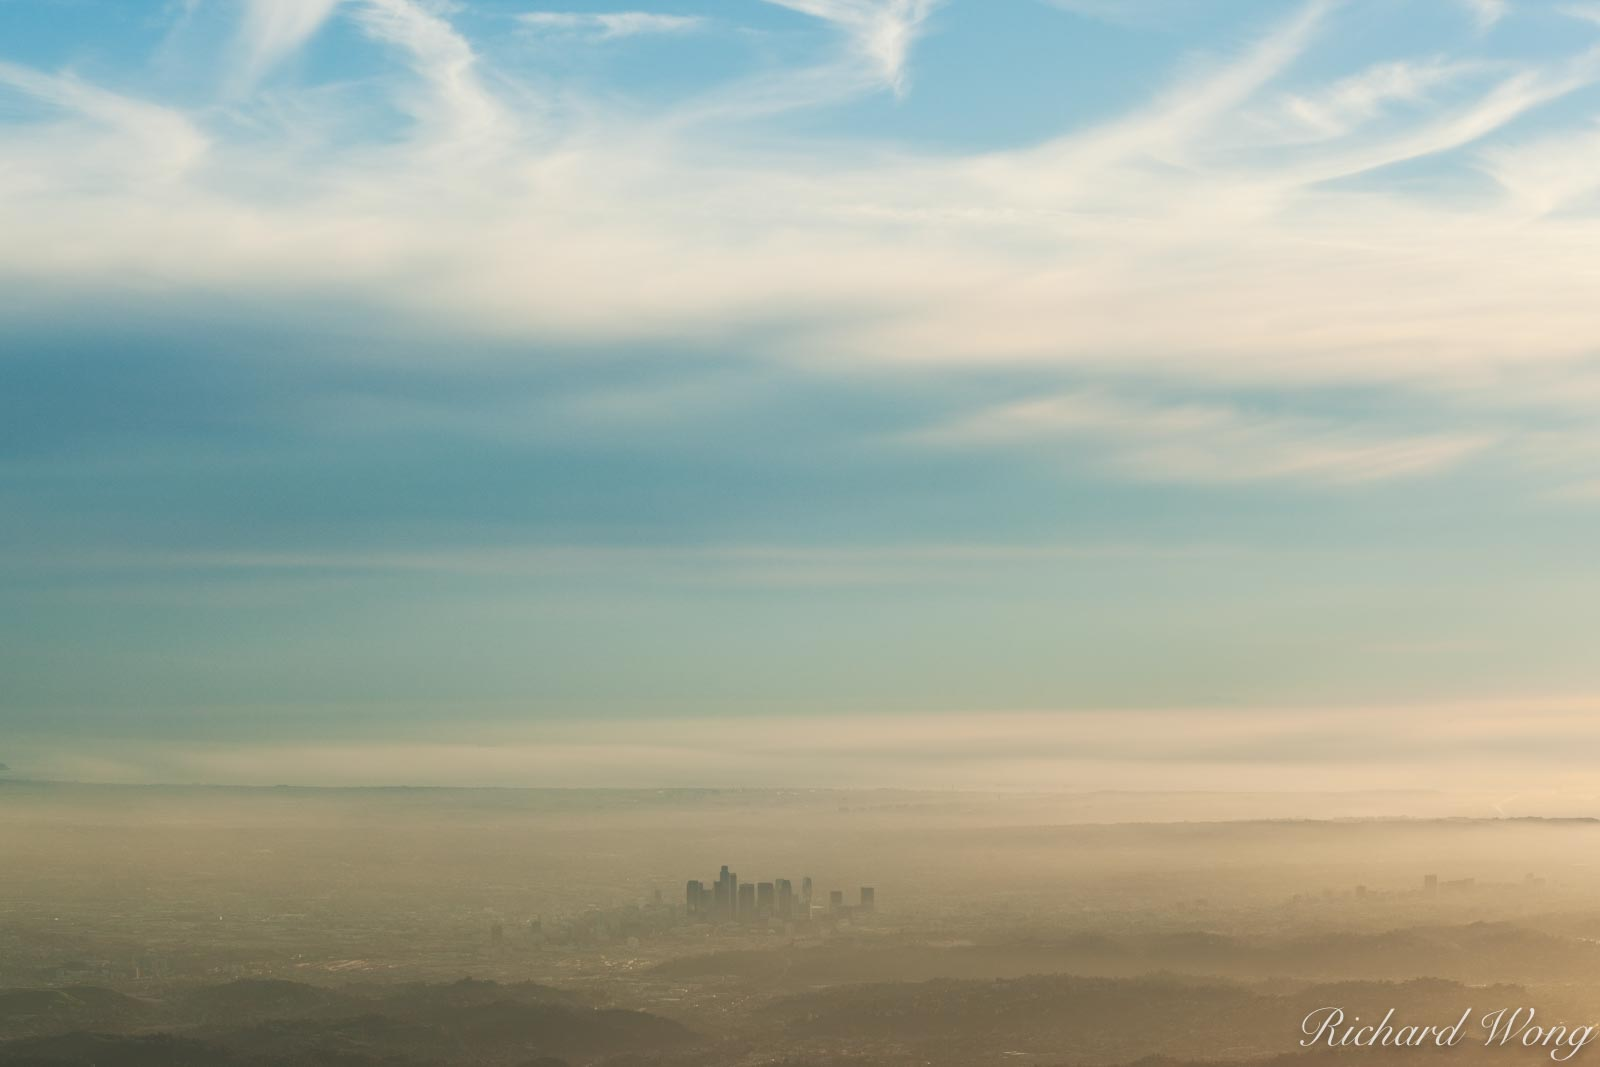 Los Angeles Skyline Rising Above Marine Layer From Mount Wilson Summit, Angeles National Forest, California, photo, photo